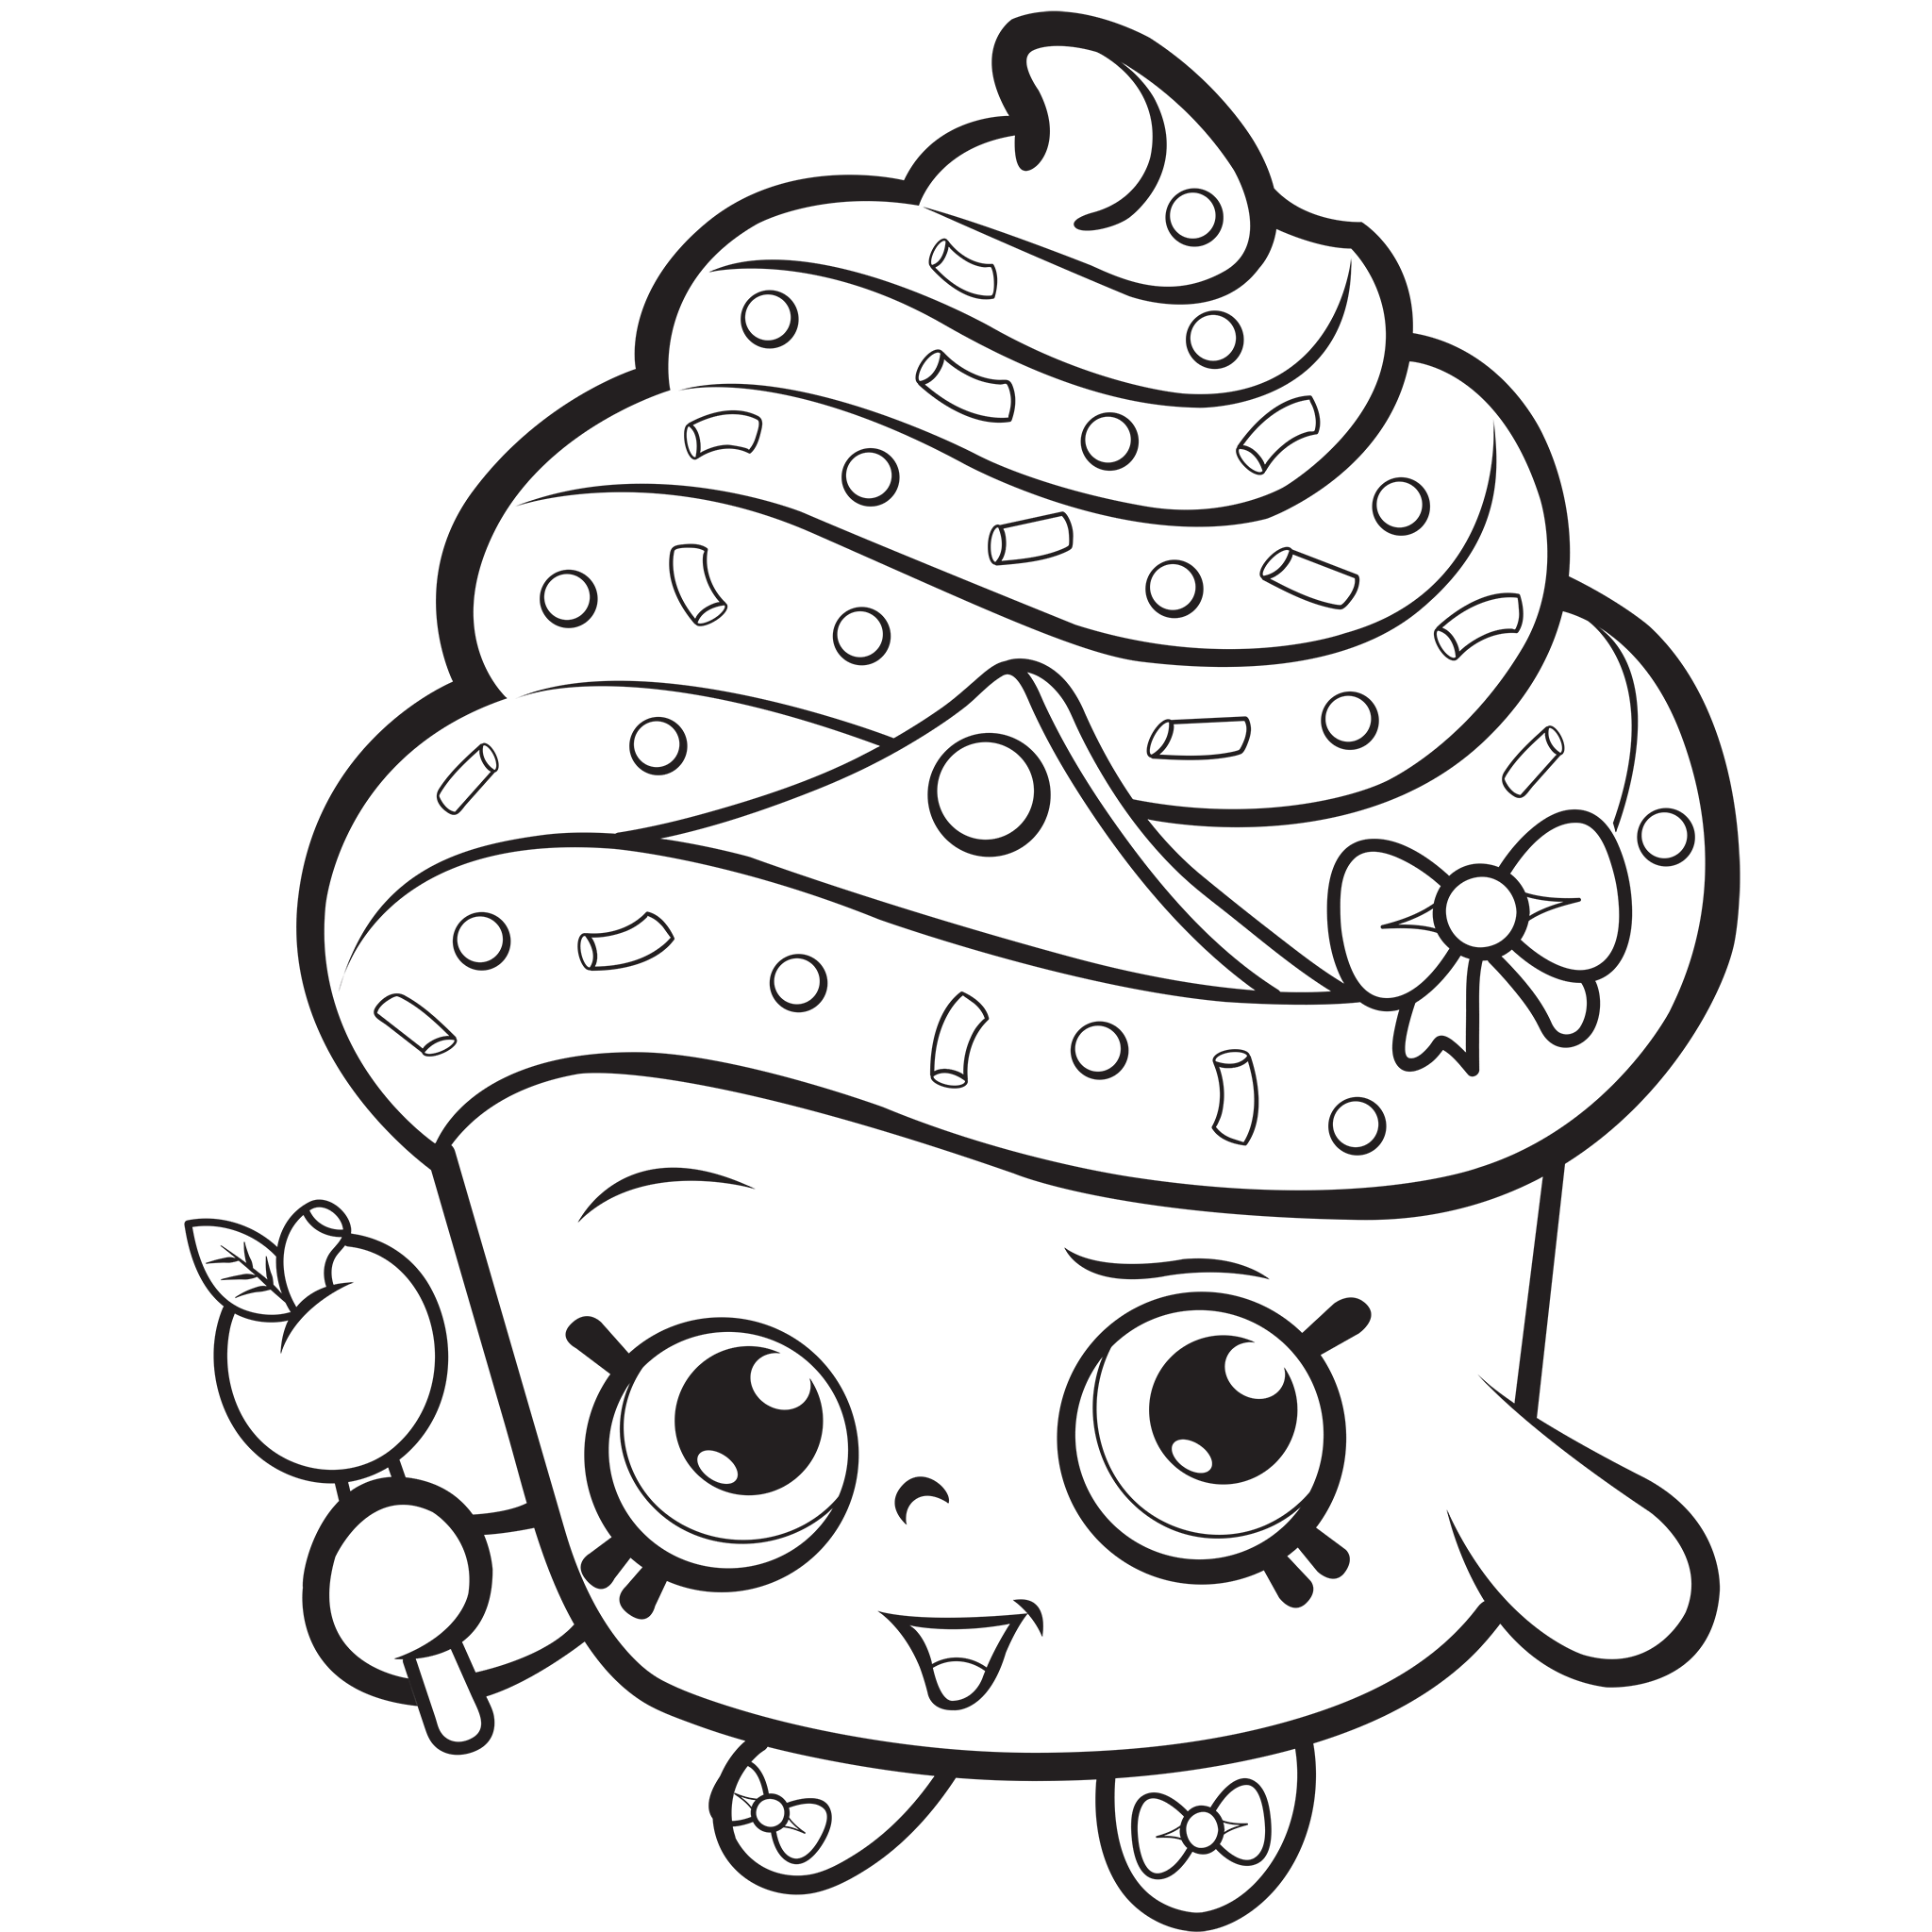 16 Unique And Rare Shopkins Coloring Pages Shopkins Birthdays